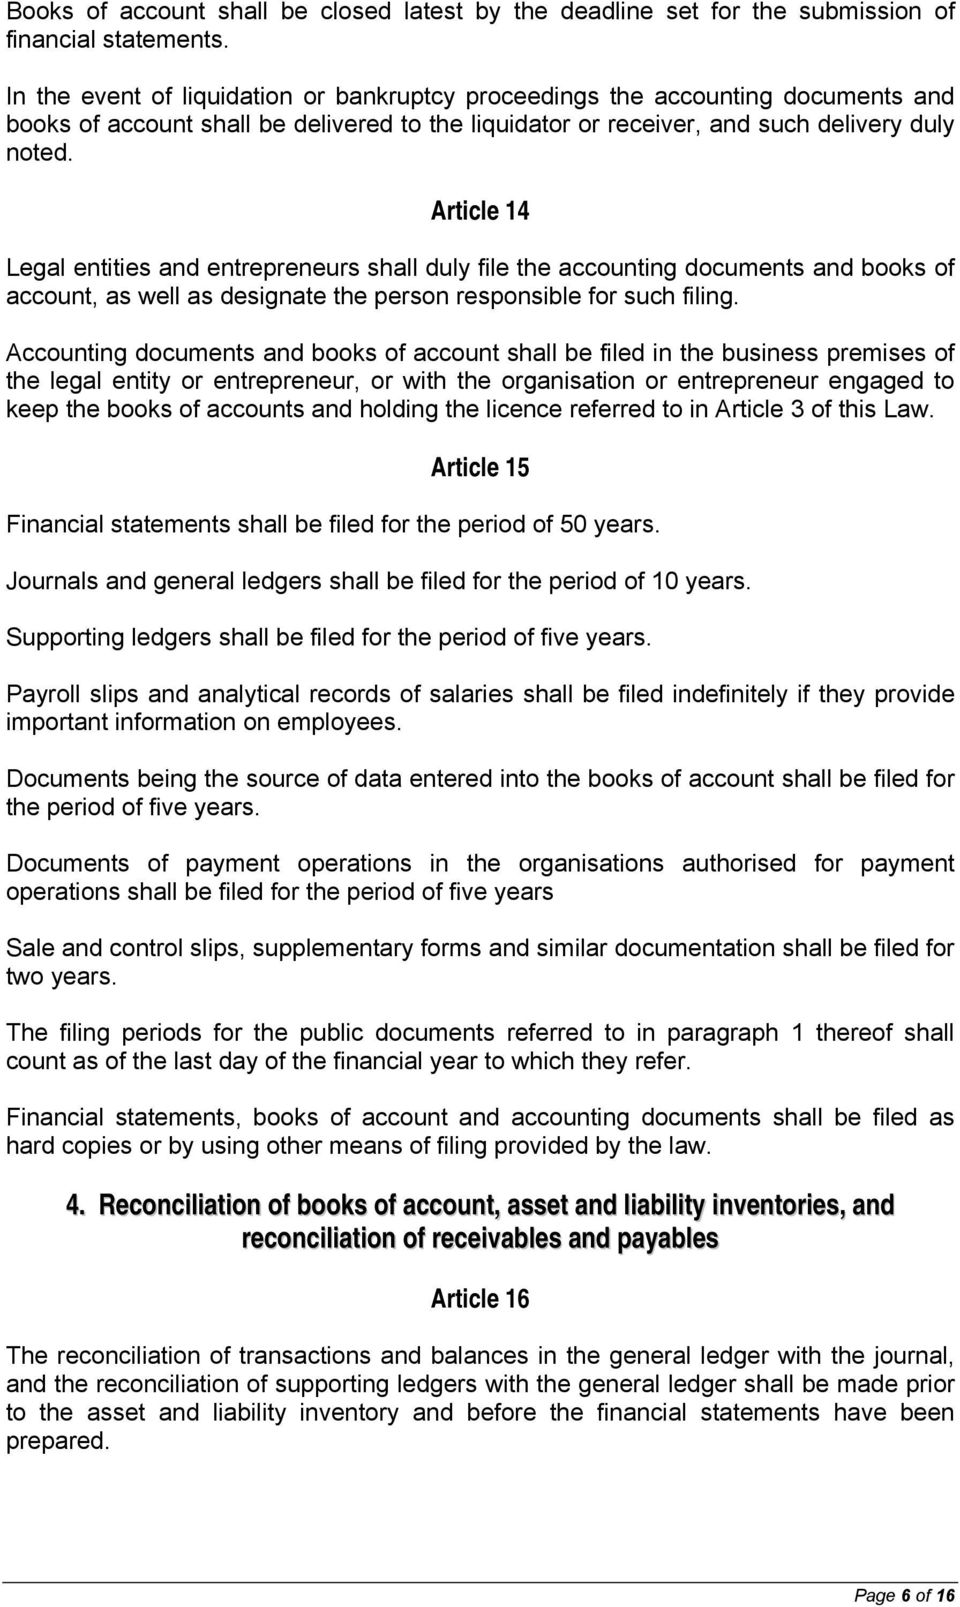 Article 14 Legal entities and entrepreneurs shall duly file the accounting documents and books of account, as well as designate the person responsible for such filing.